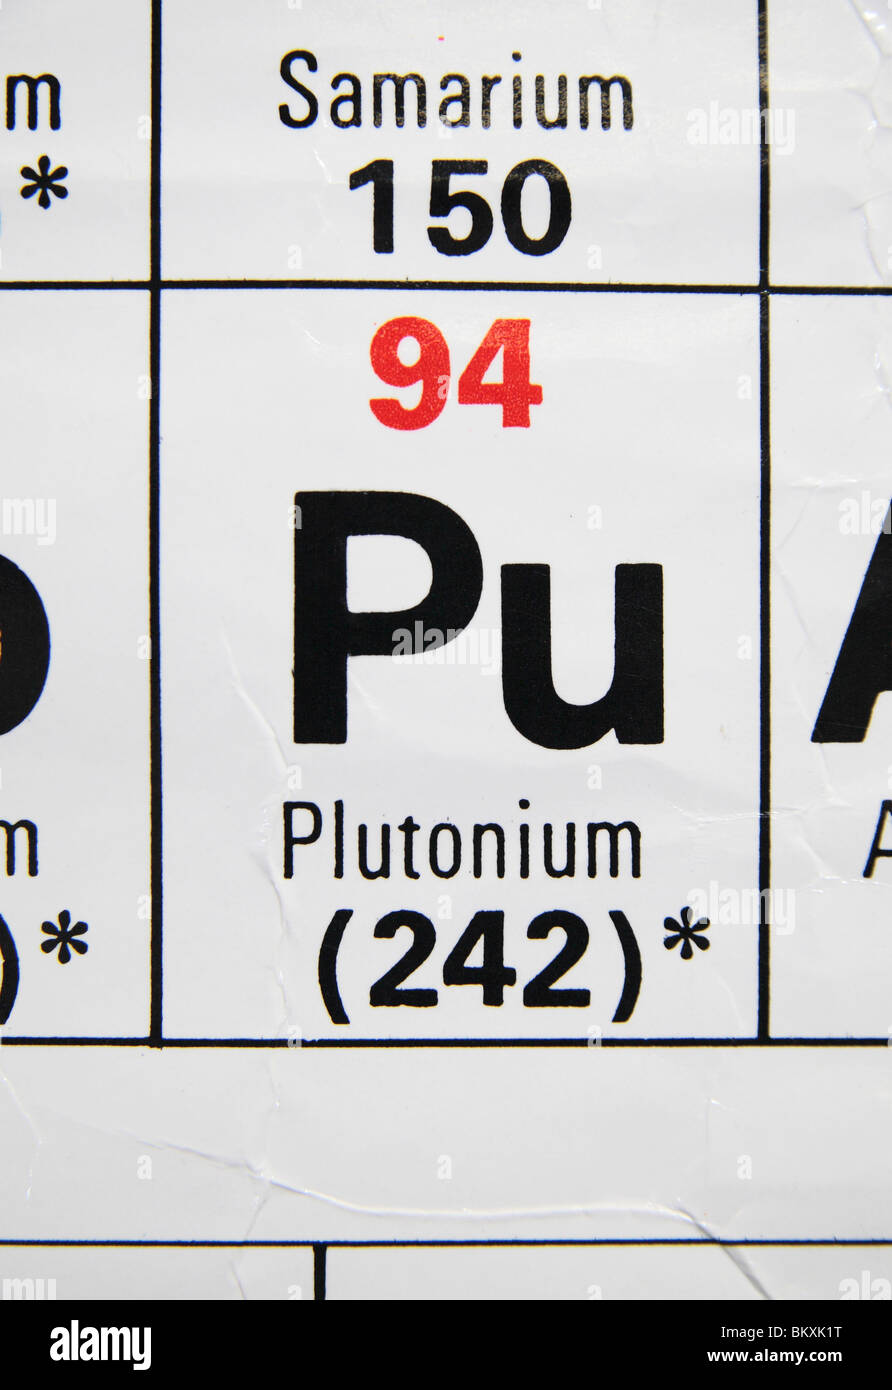 Close up view of a standard UK high school periodic table focusing on Plutonium. - Stock Image